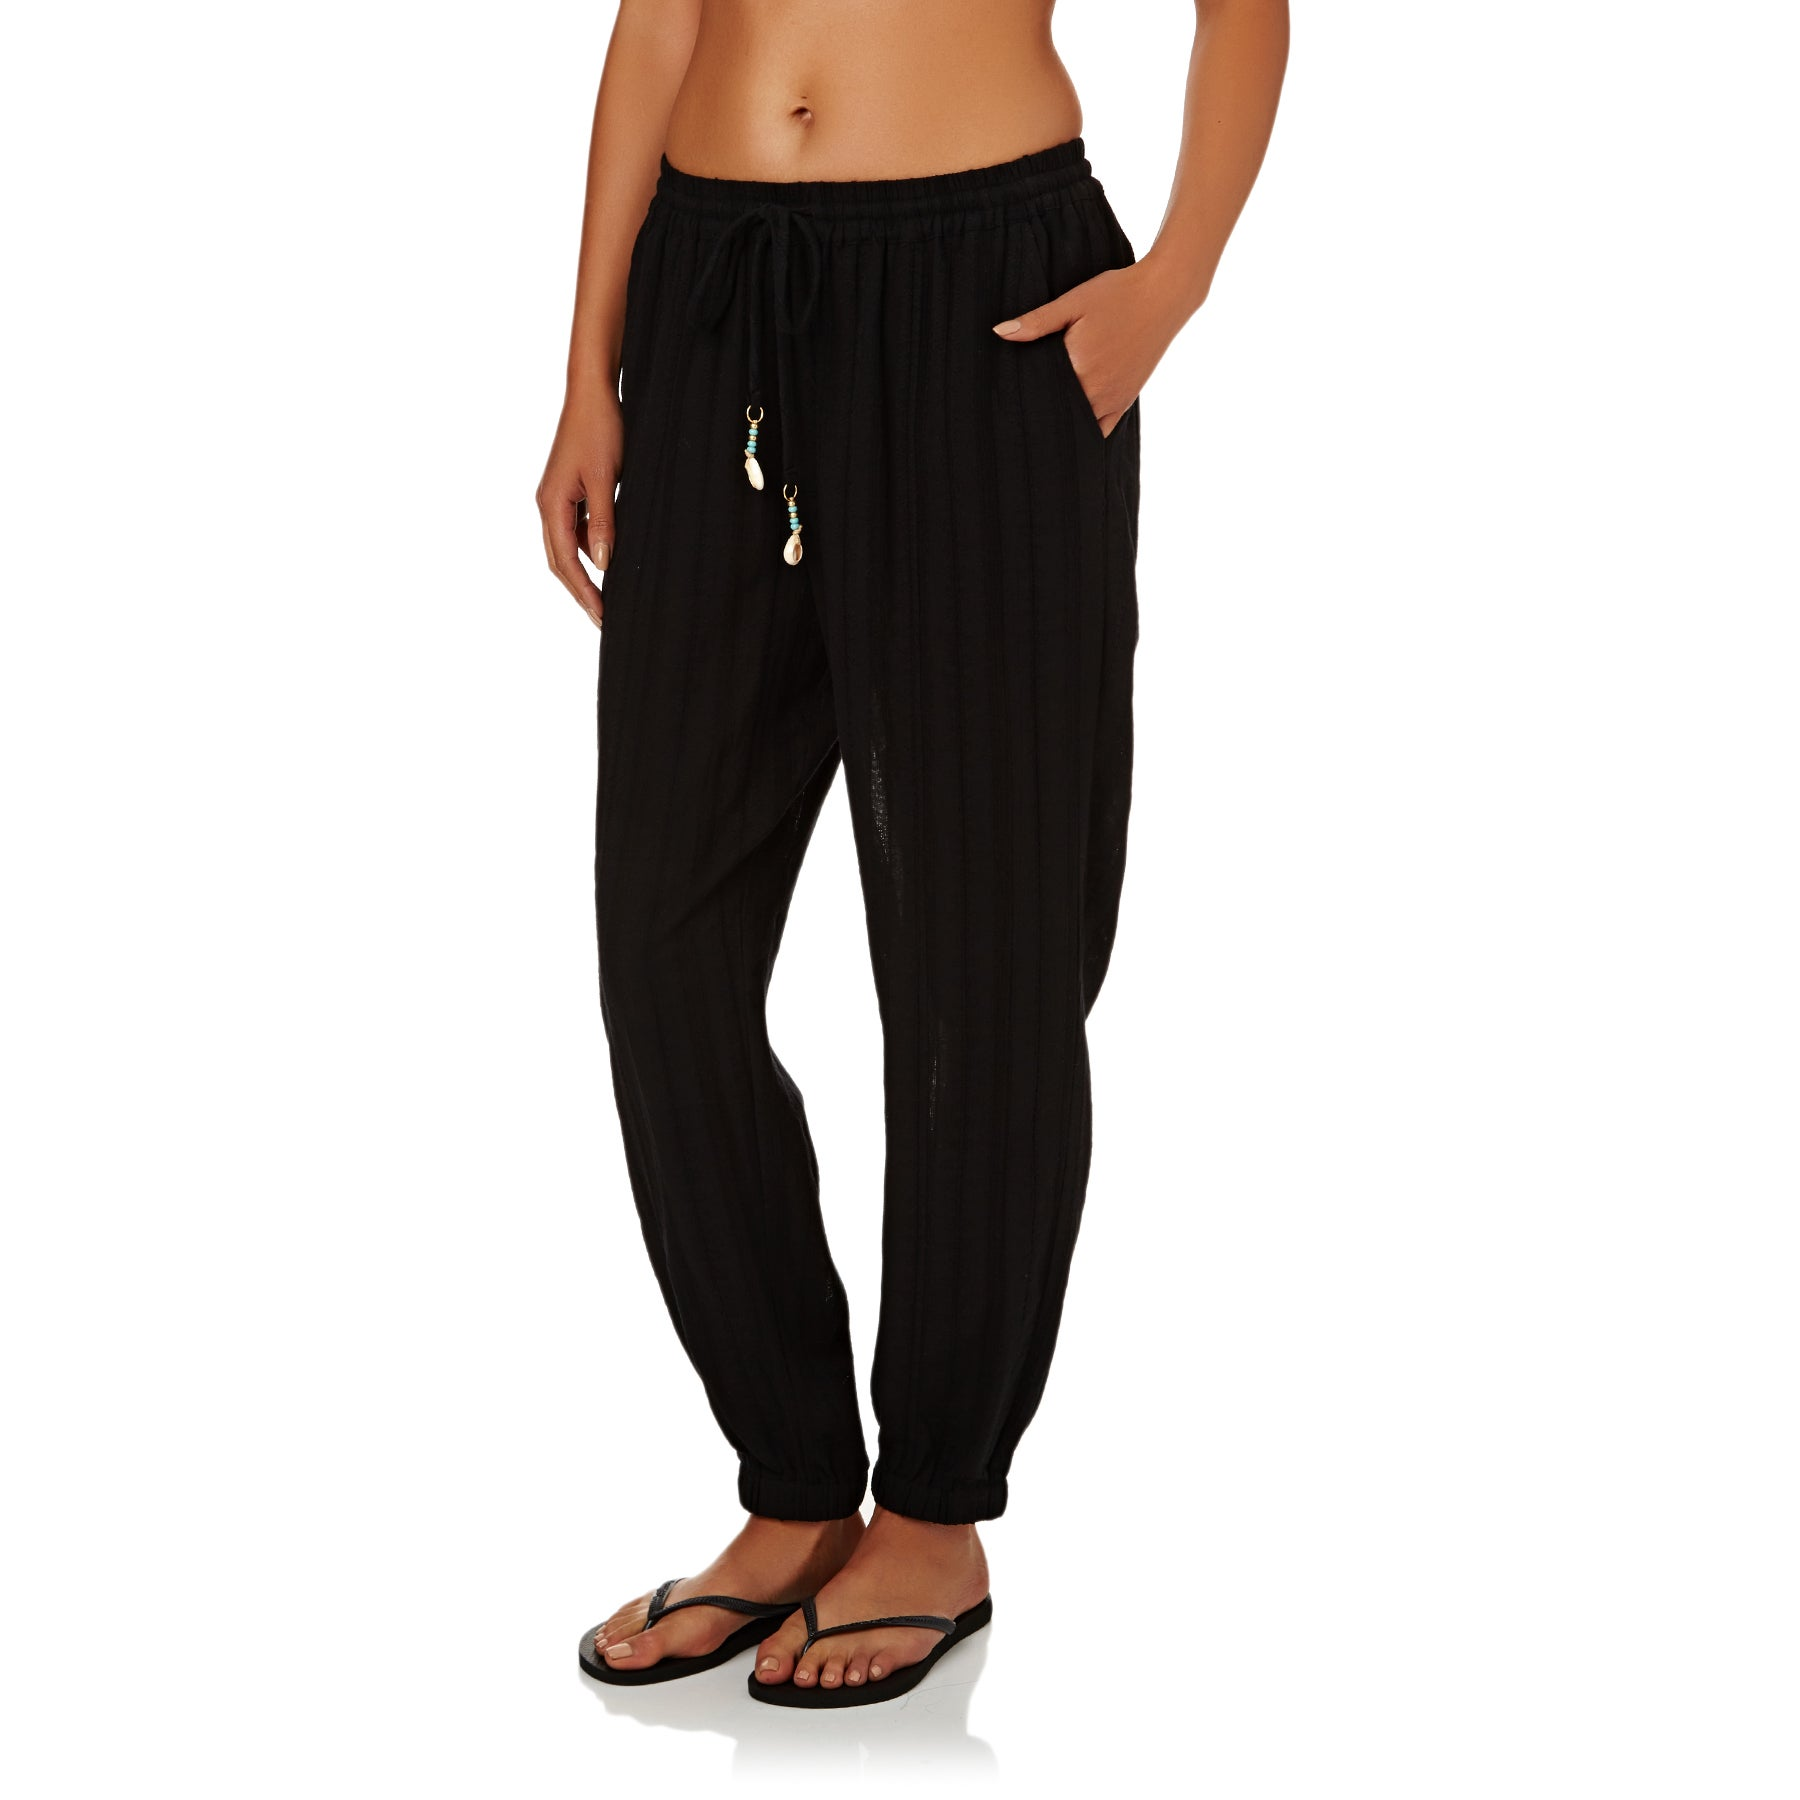 Black All Sizes Seafolly Washed Dobby Beach Womens Pants Trousers